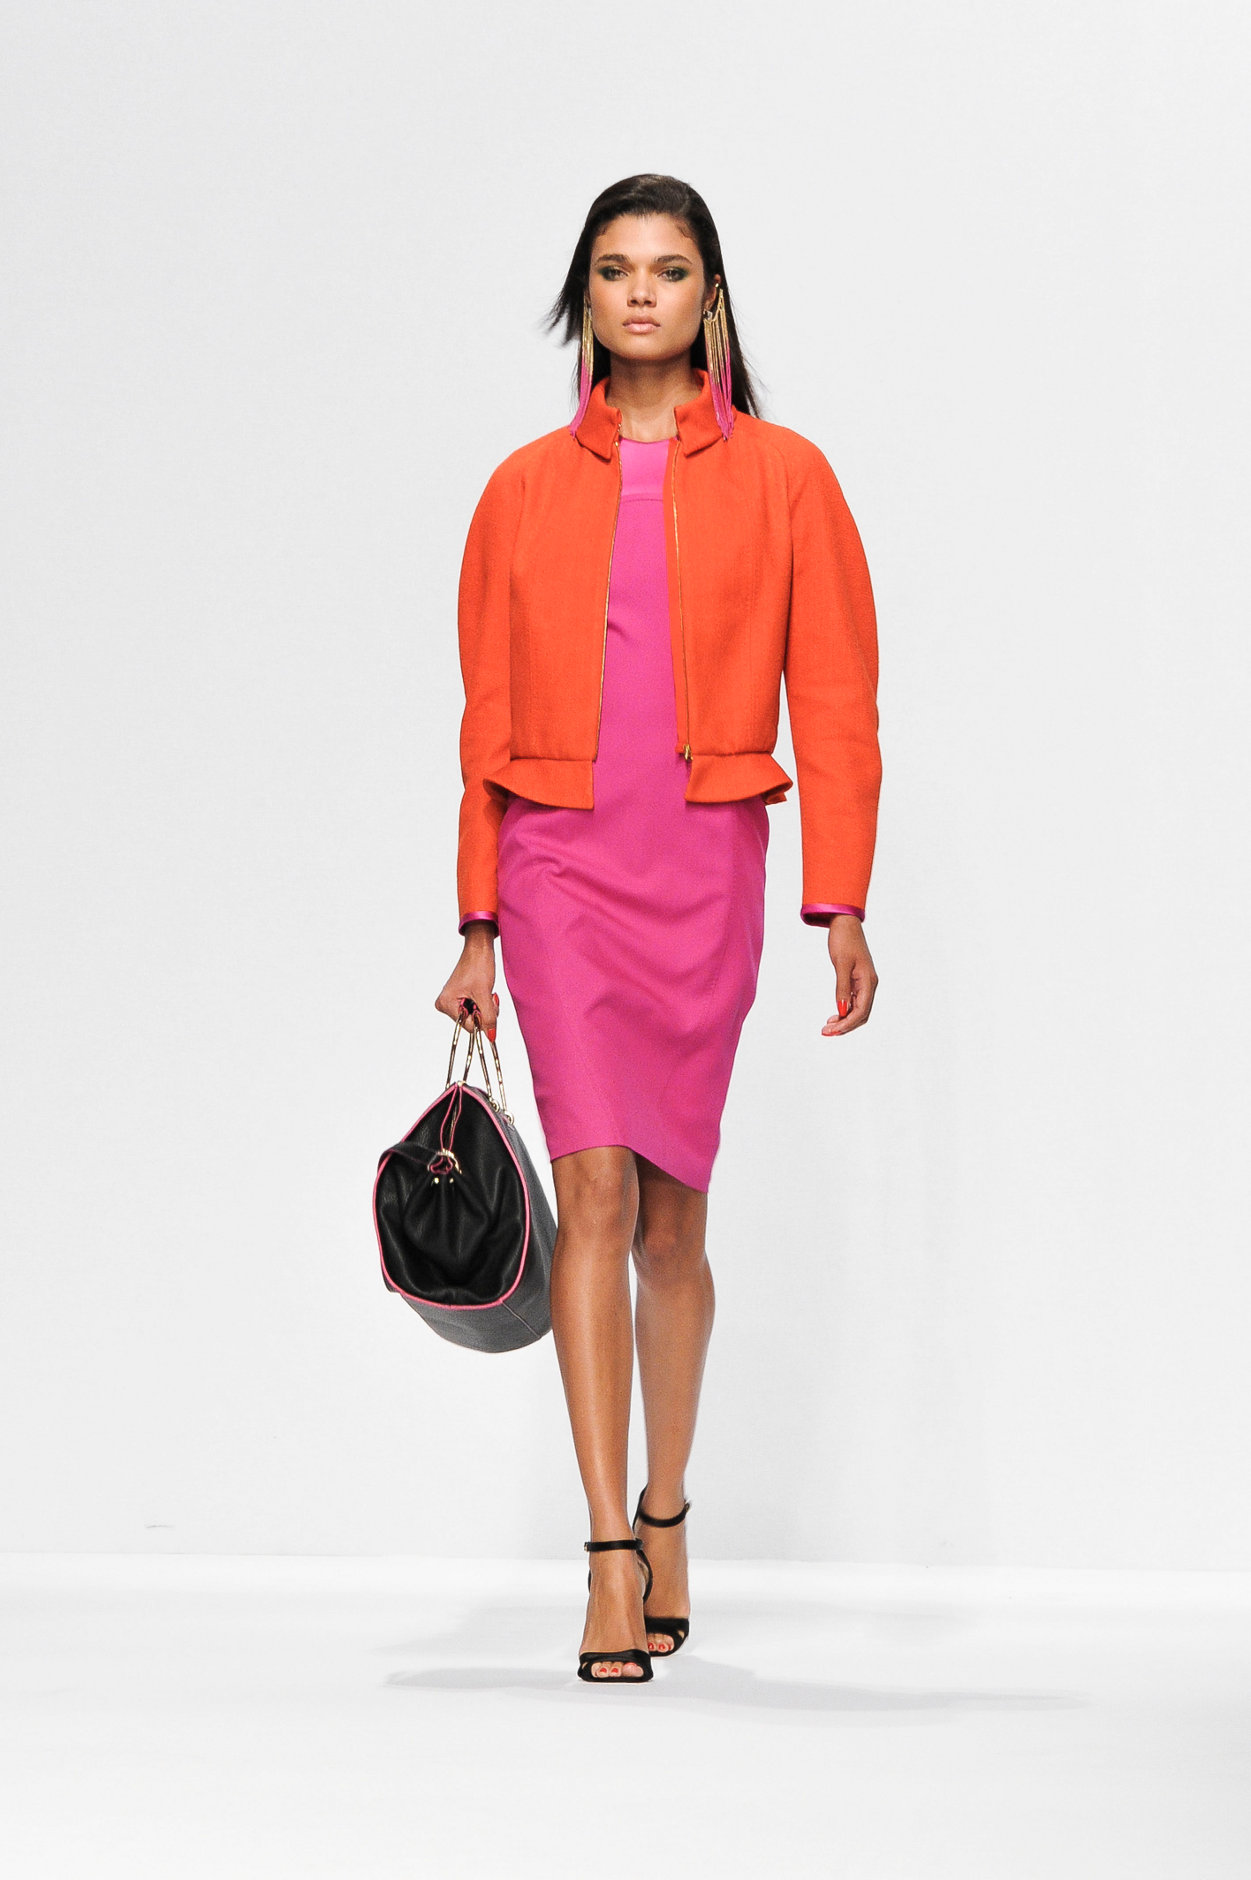 Fashion Color Trends Spring 2013